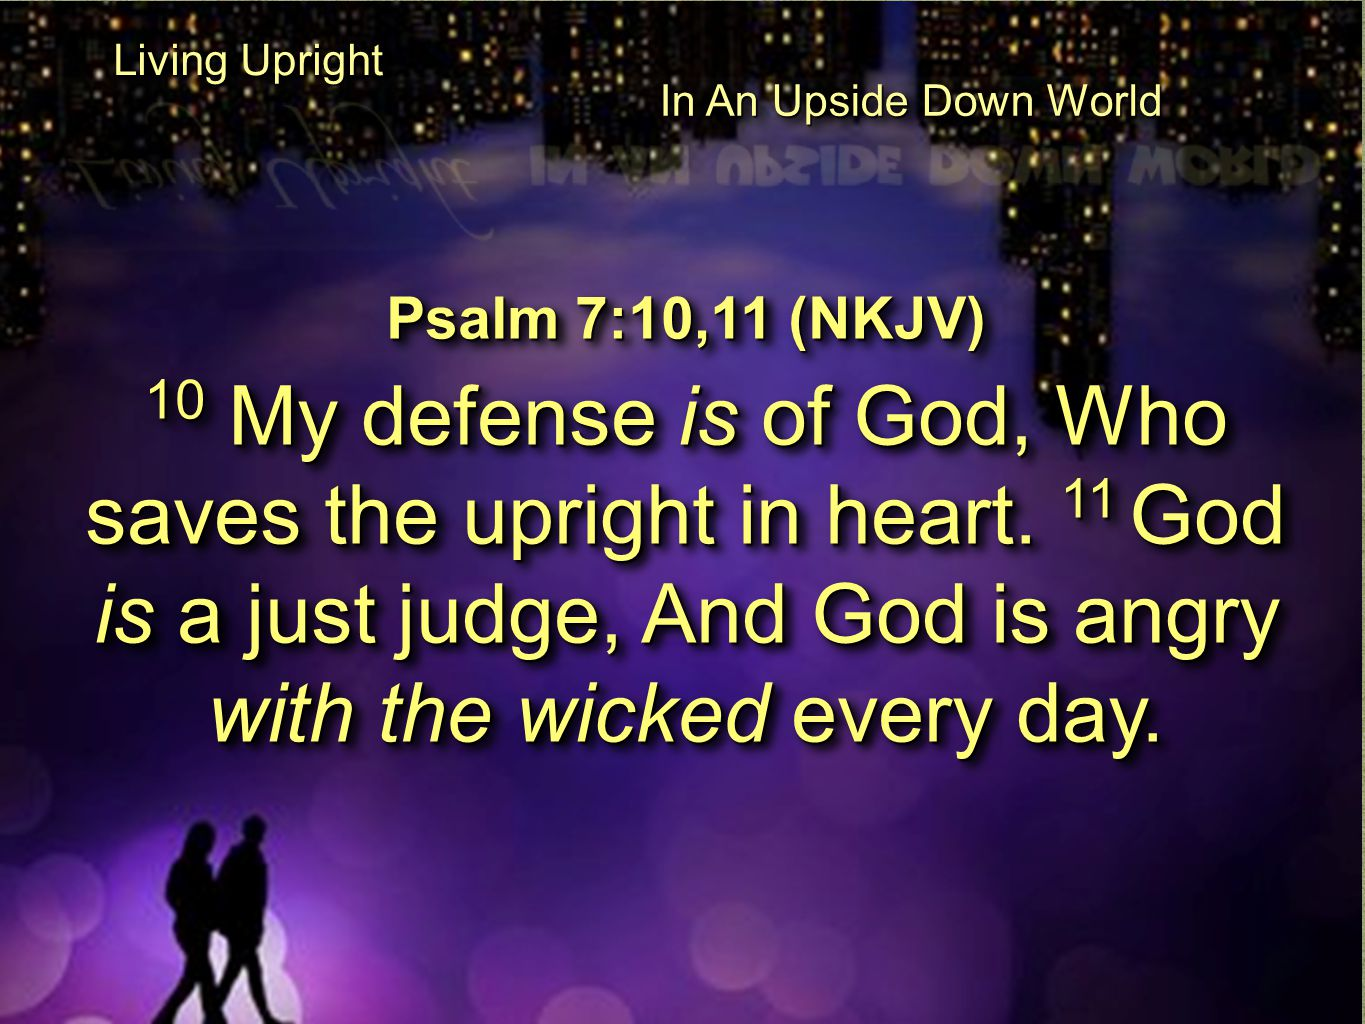 Psalm 7:10,11 (NKJV) 10 My defense is of God, Who saves the upright in heart.